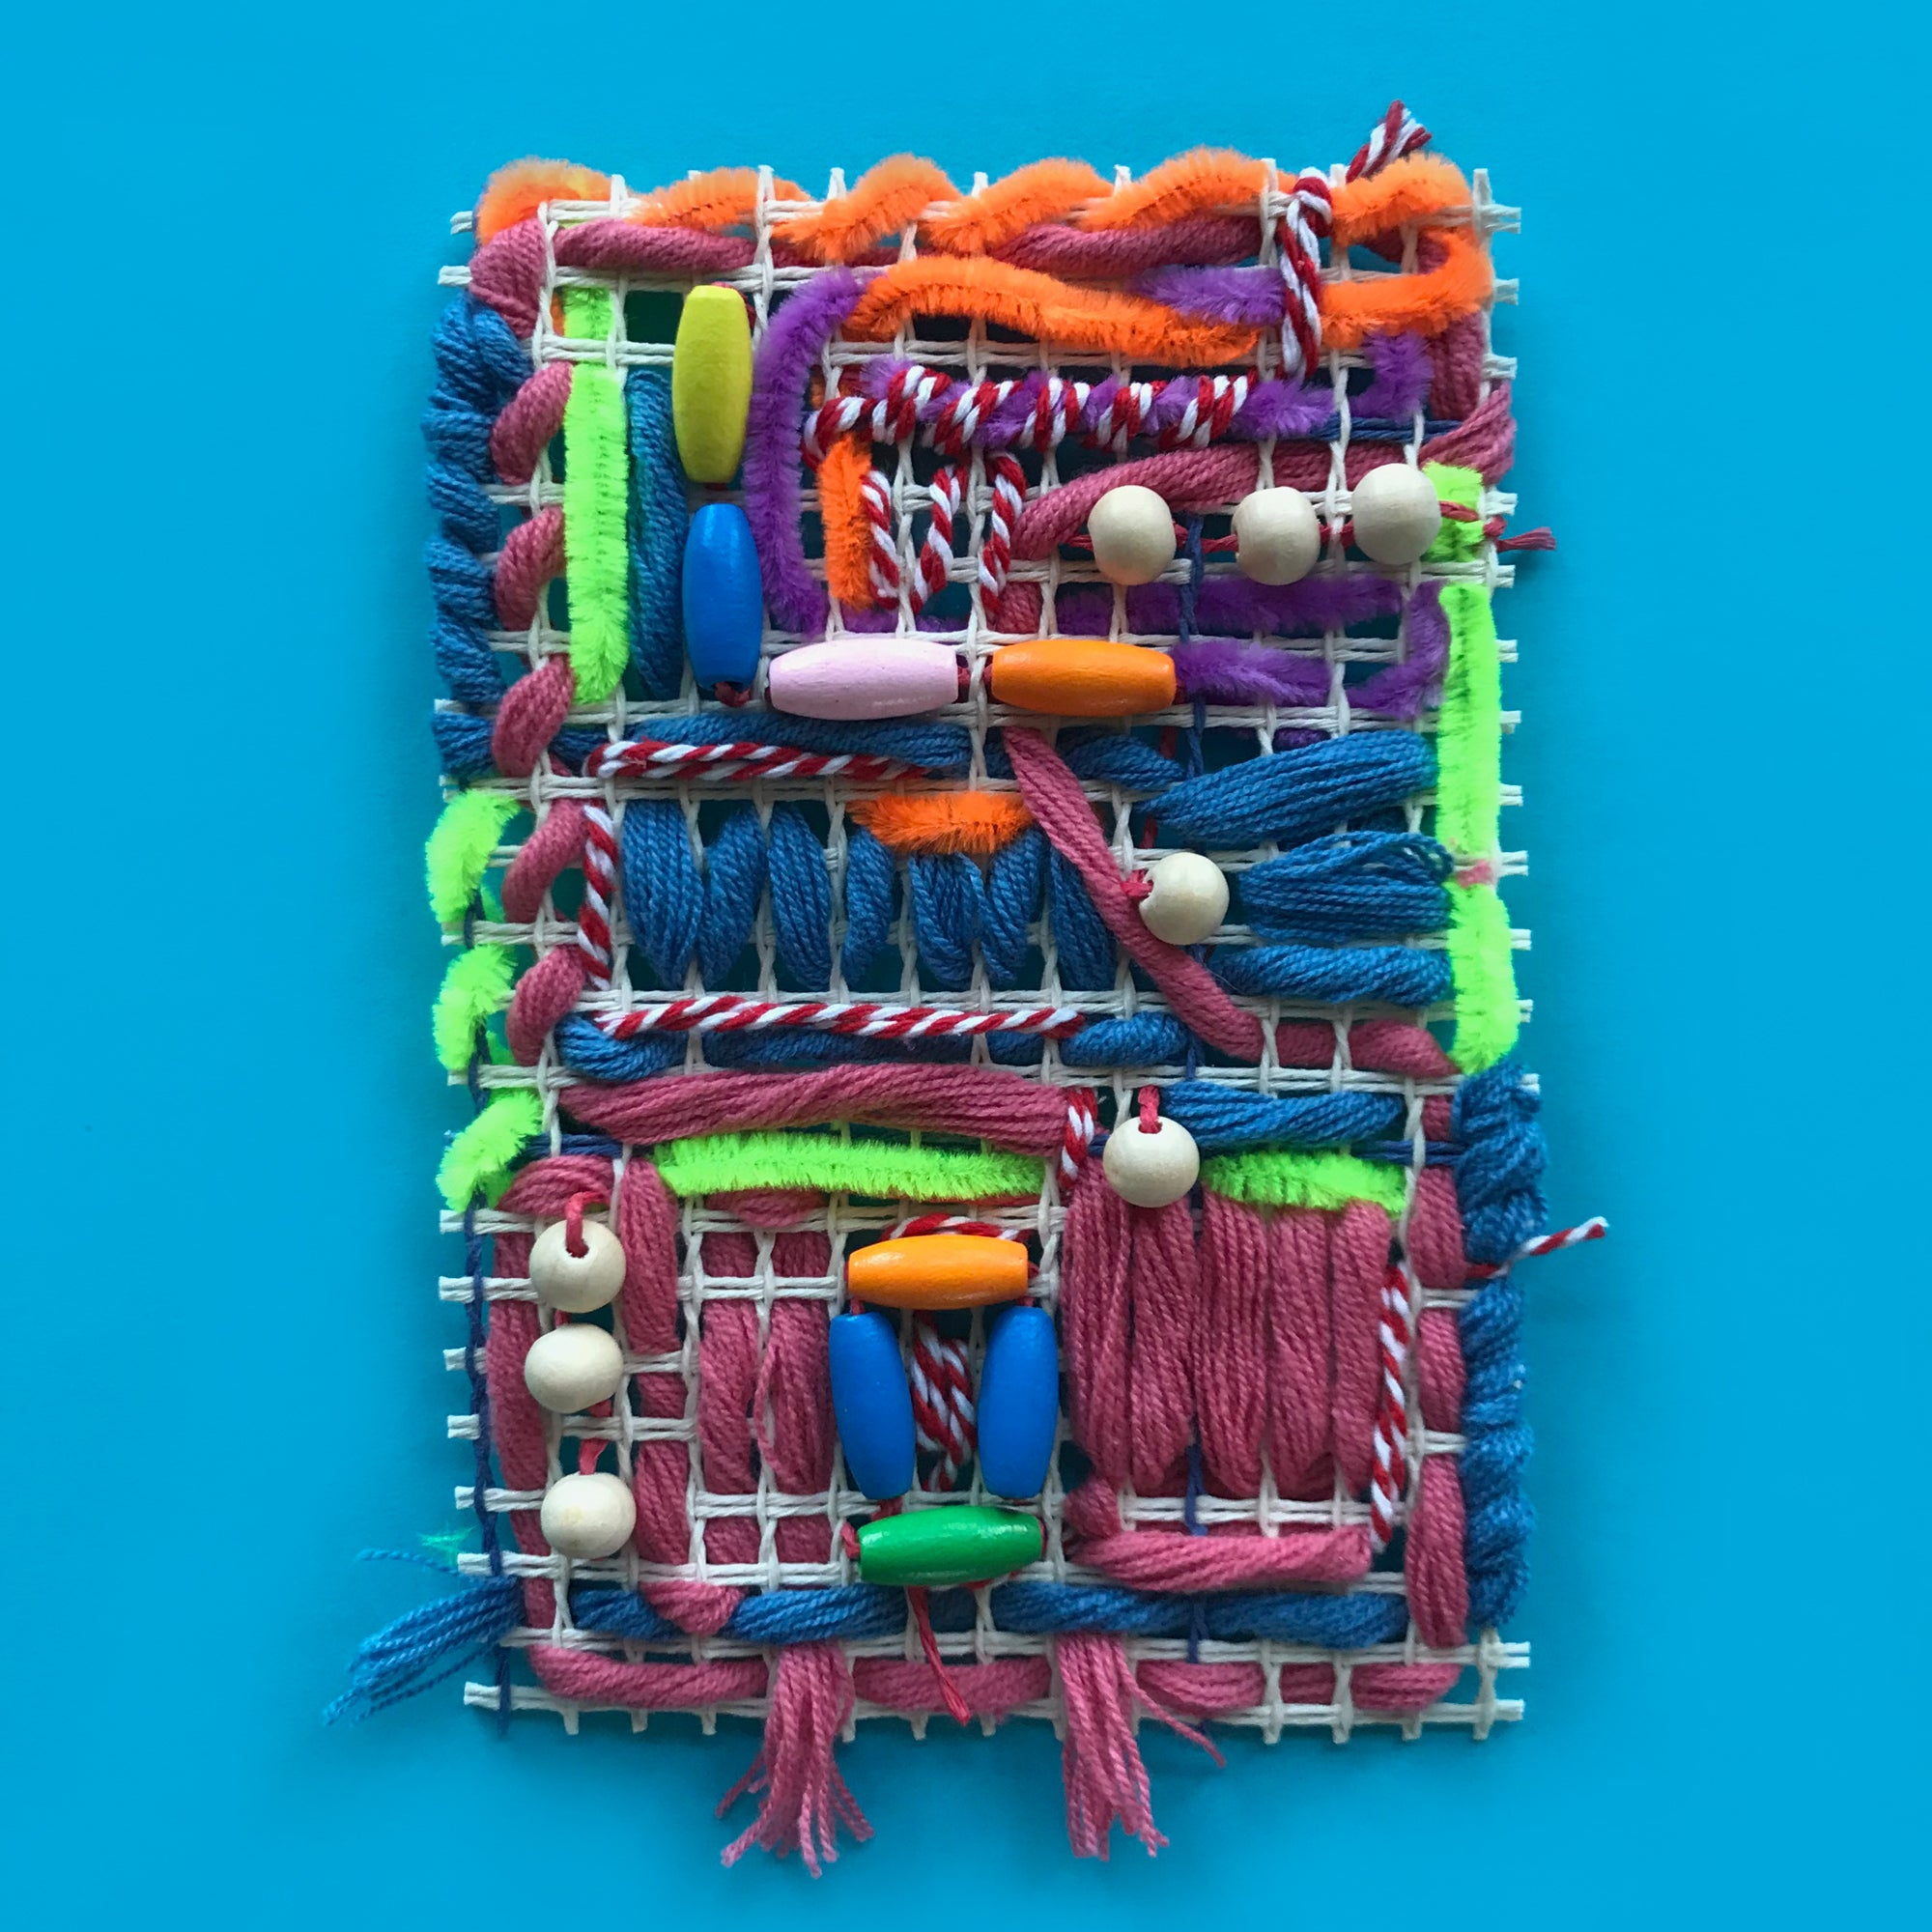 Mixed media textile weaving for kids